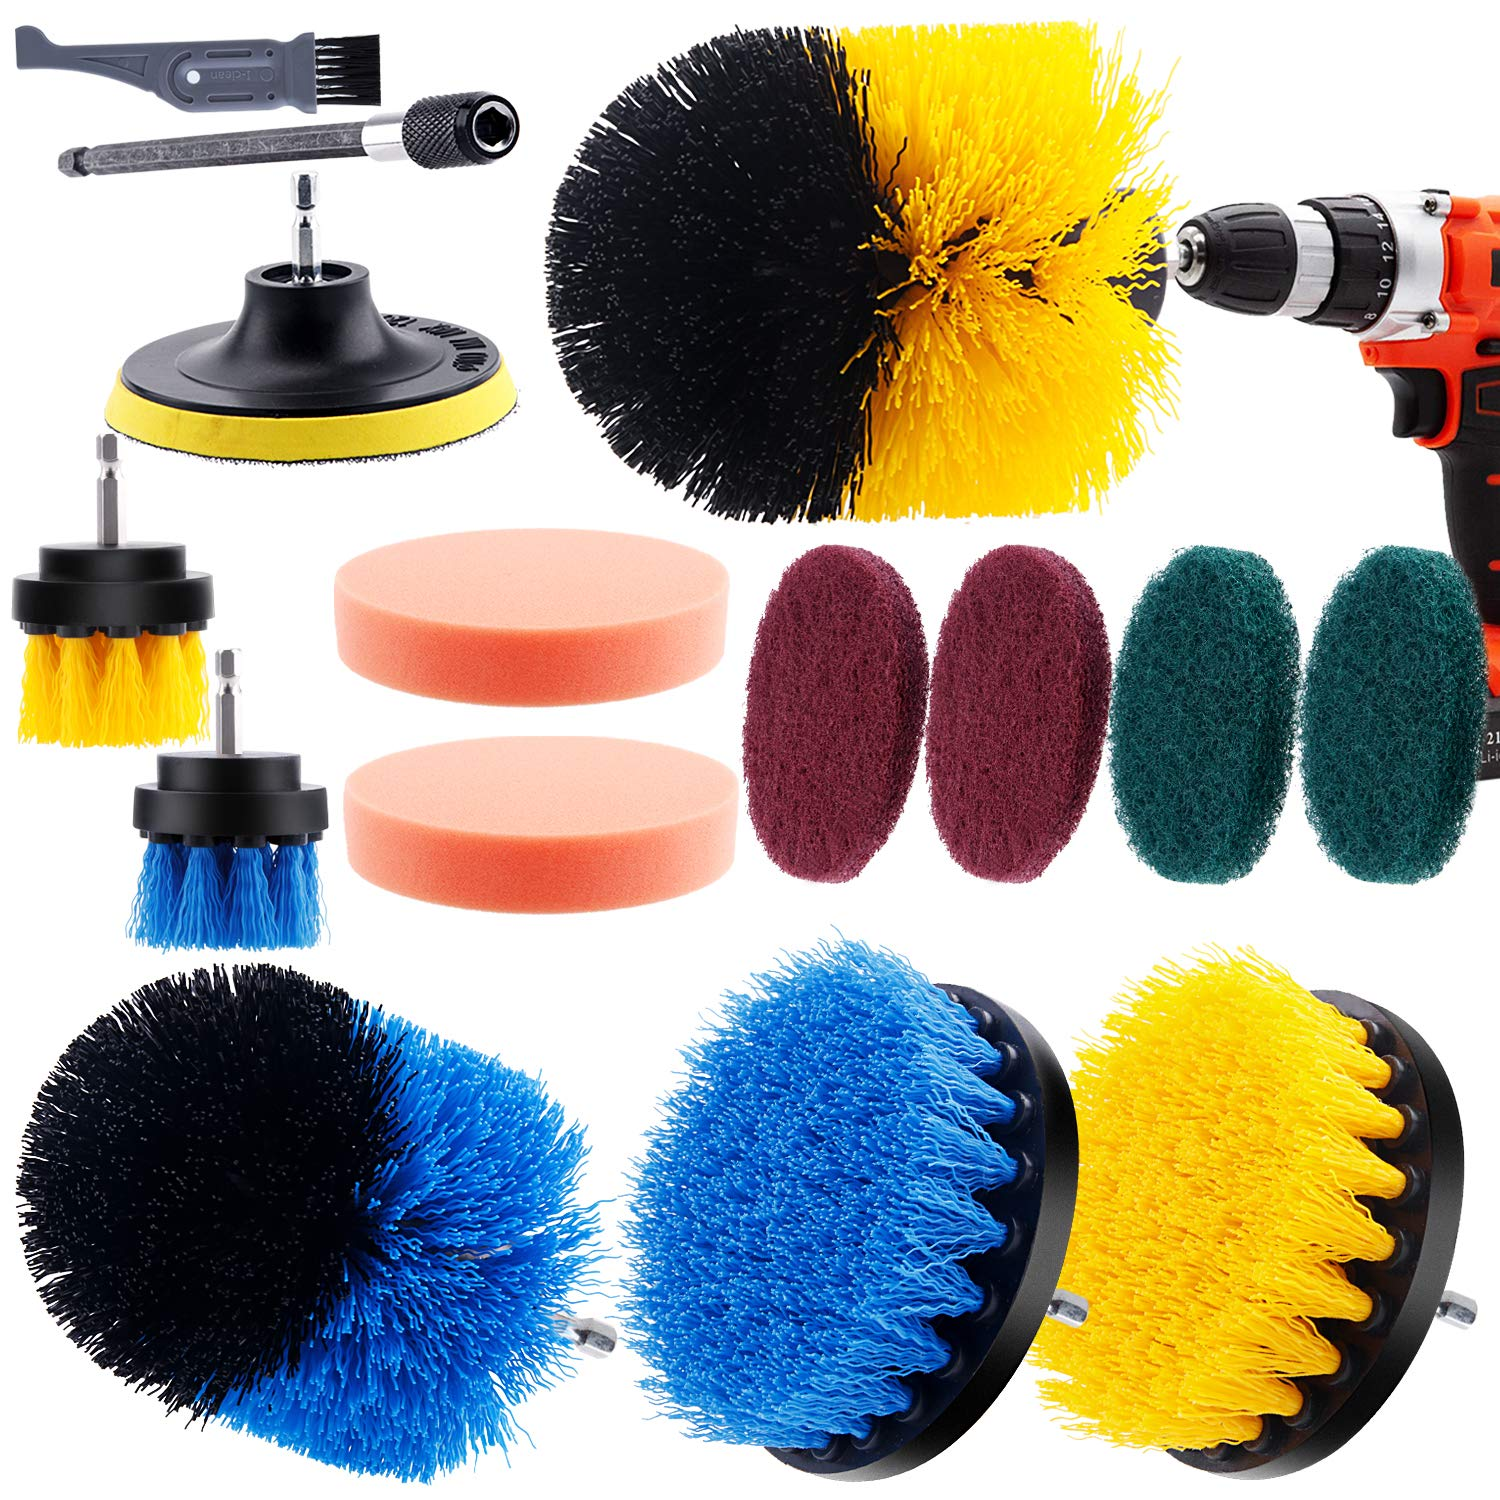 I clean 14 Pieces Drill Brush attachments, Power Scrubber Brush Cleaning Kit for Bathroom Surface, Grout, Tub, Shower, Kitchen, Auto,Tile, Corners